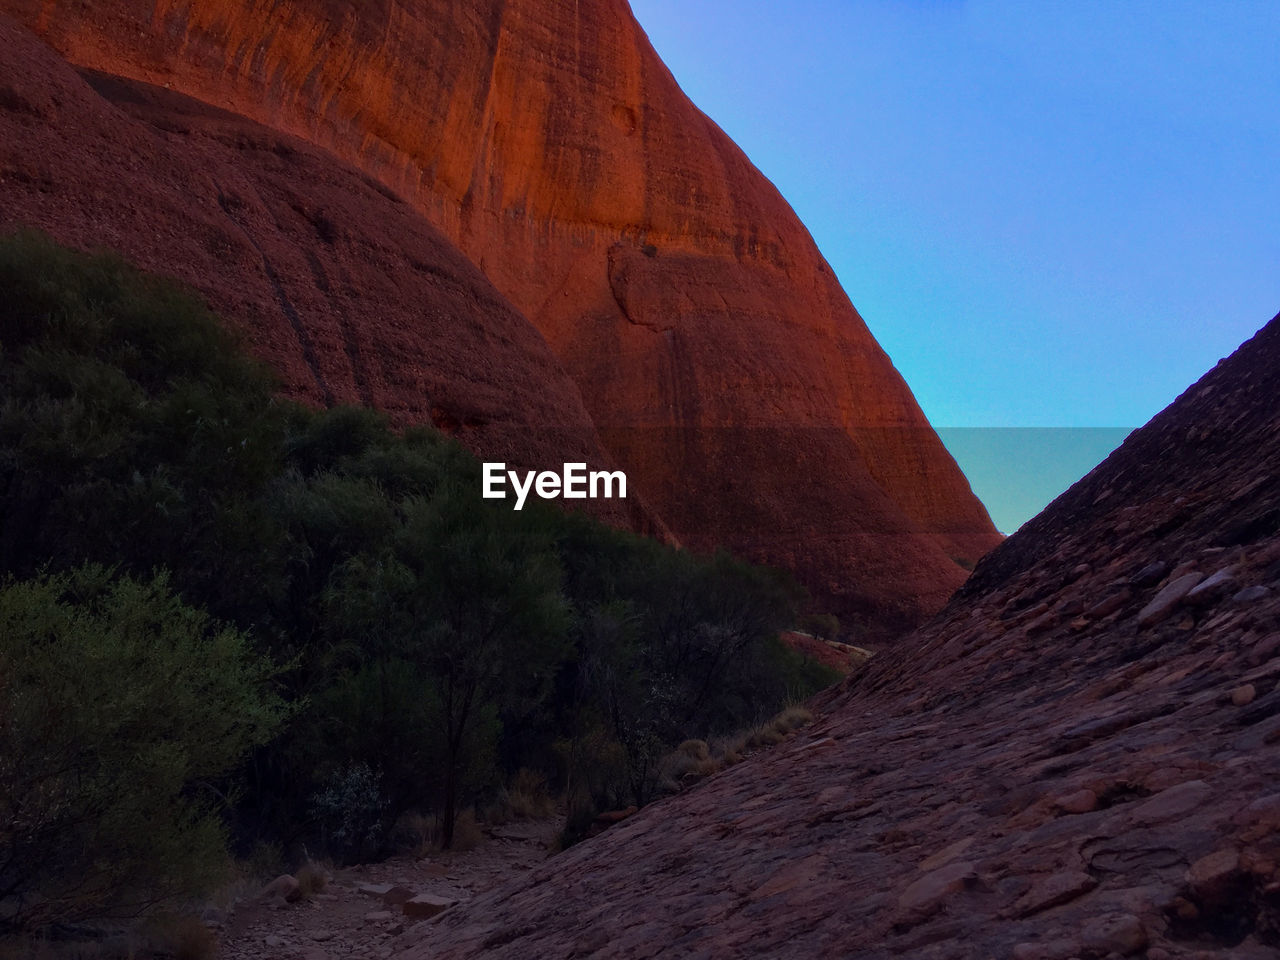 sky, rock, rock - object, rock formation, mountain, nature, tranquility, scenics - nature, no people, tranquil scene, solid, day, environment, geology, land, beauty in nature, travel destinations, non-urban scene, landscape, physical geography, outdoors, eroded, formation, climate, arid climate